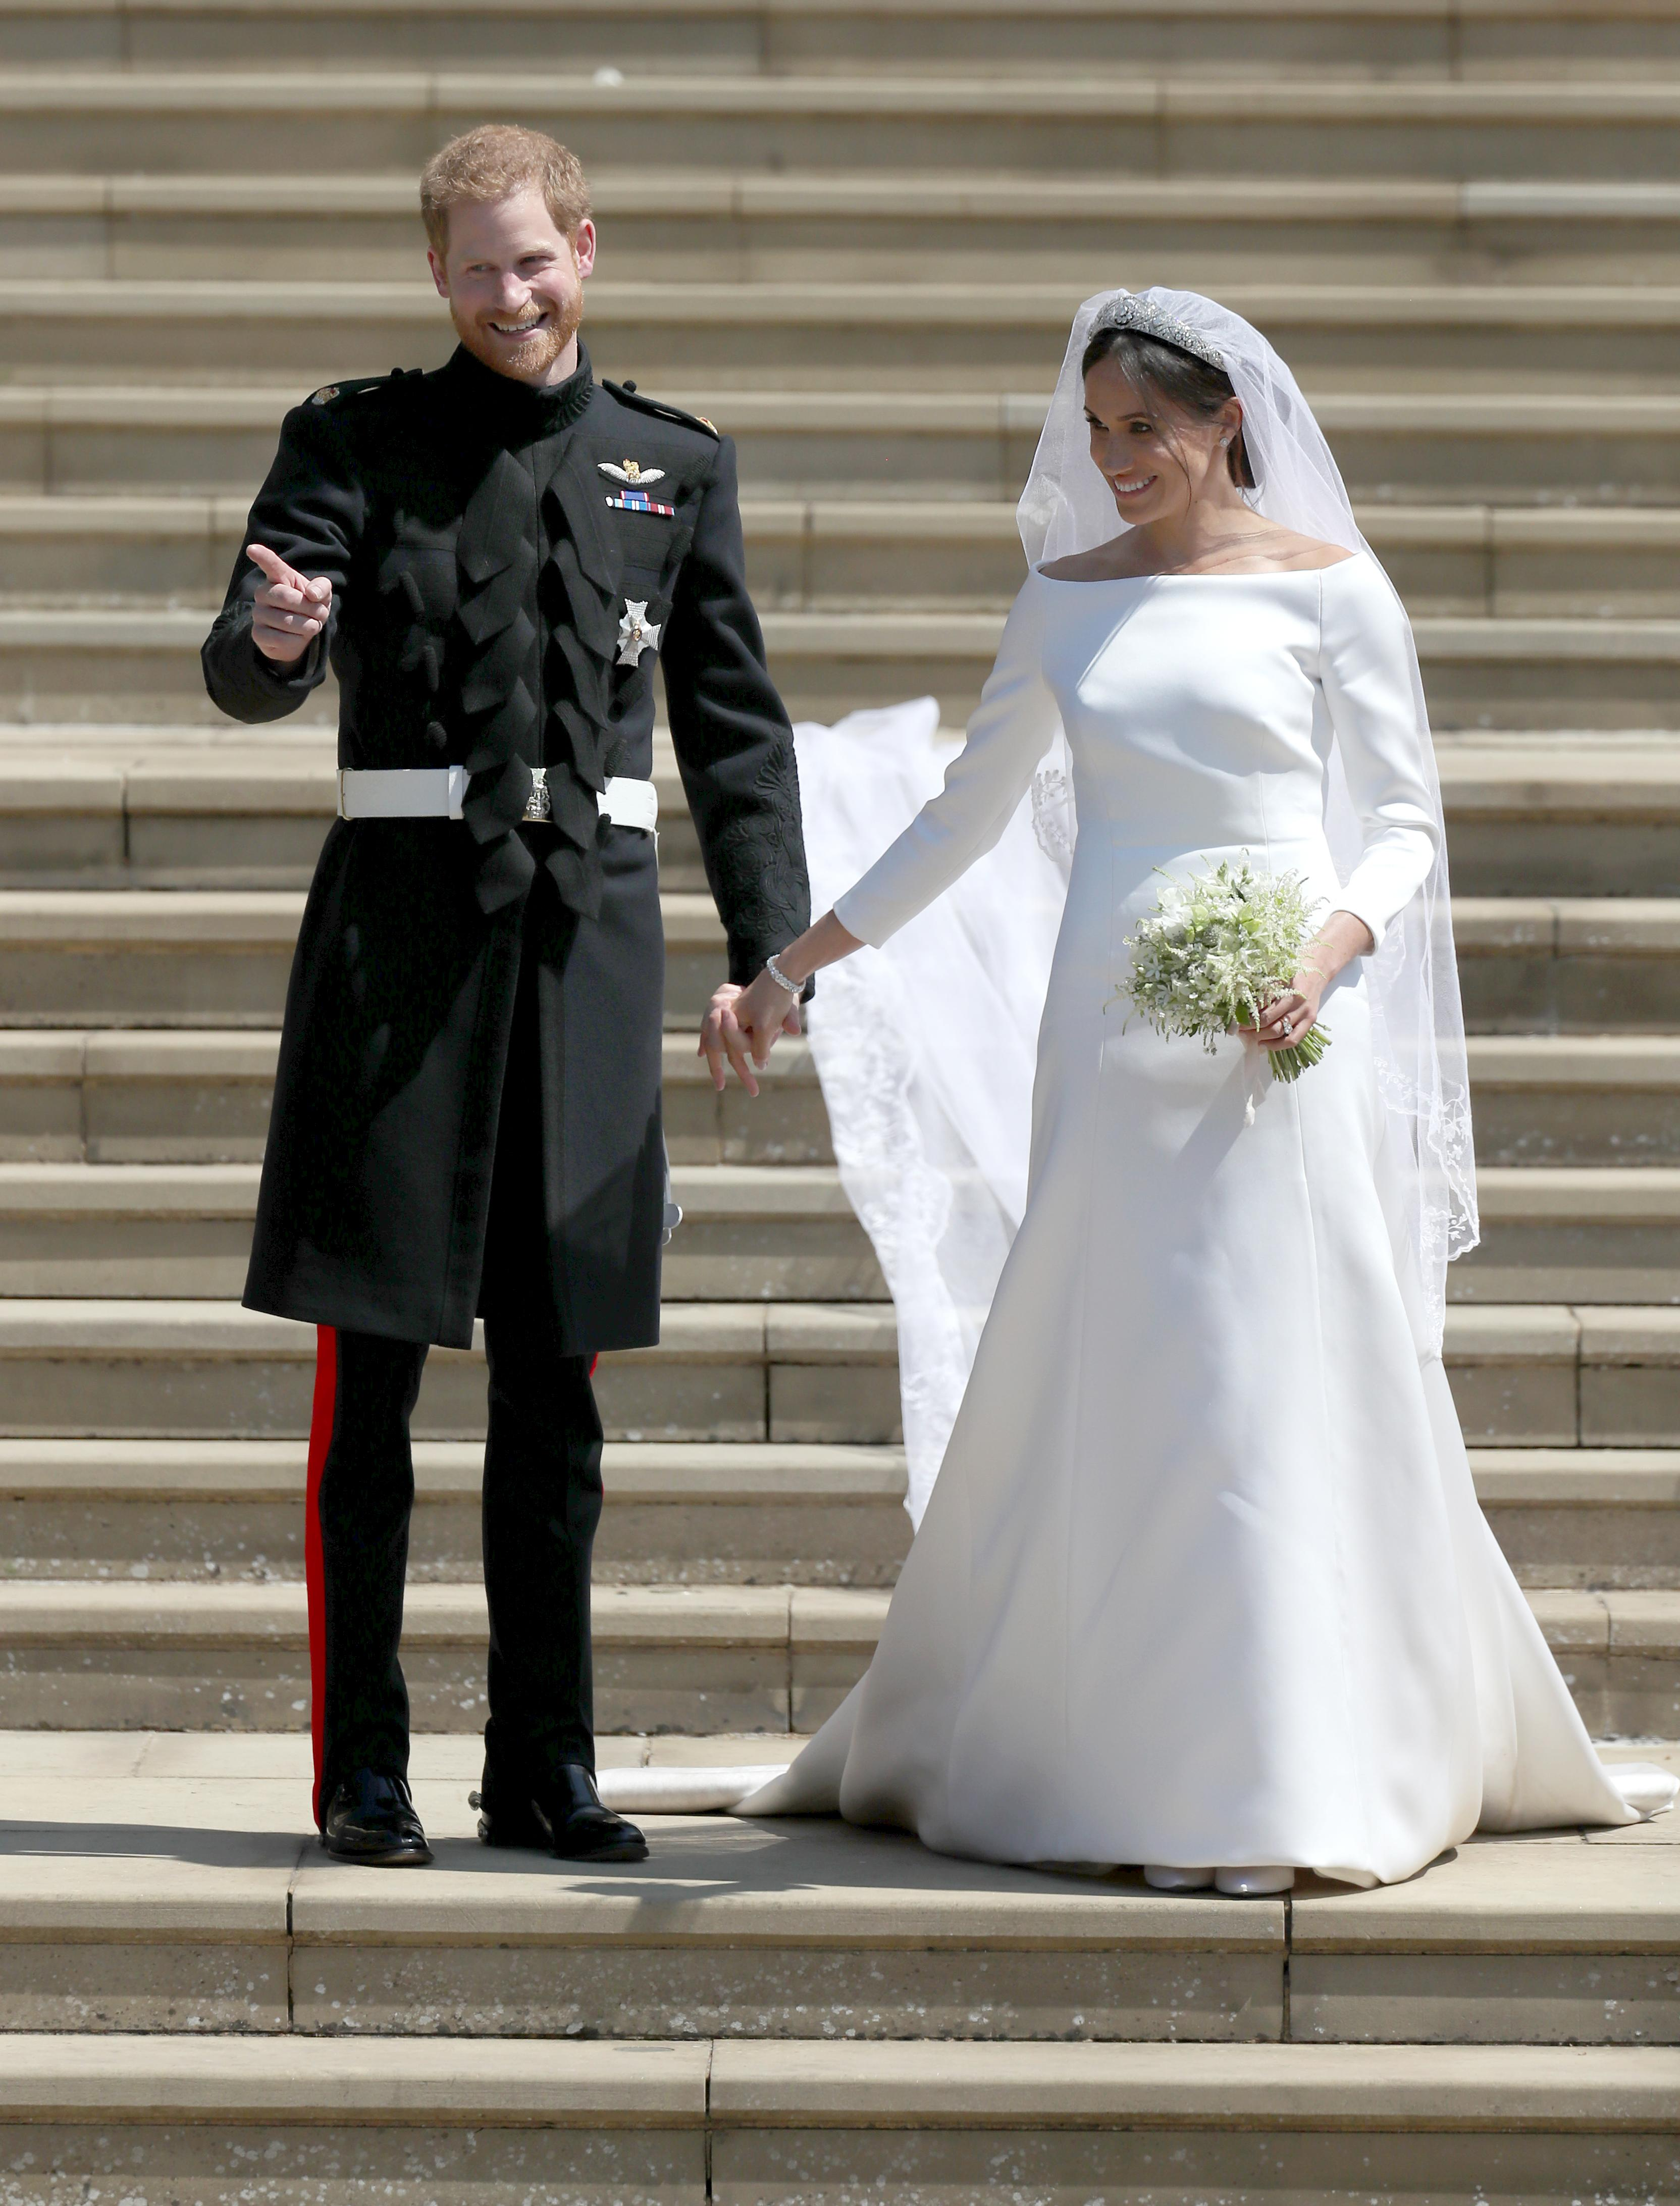 Givenchy, Stella McCartney sales boom after royal wedding [Video]